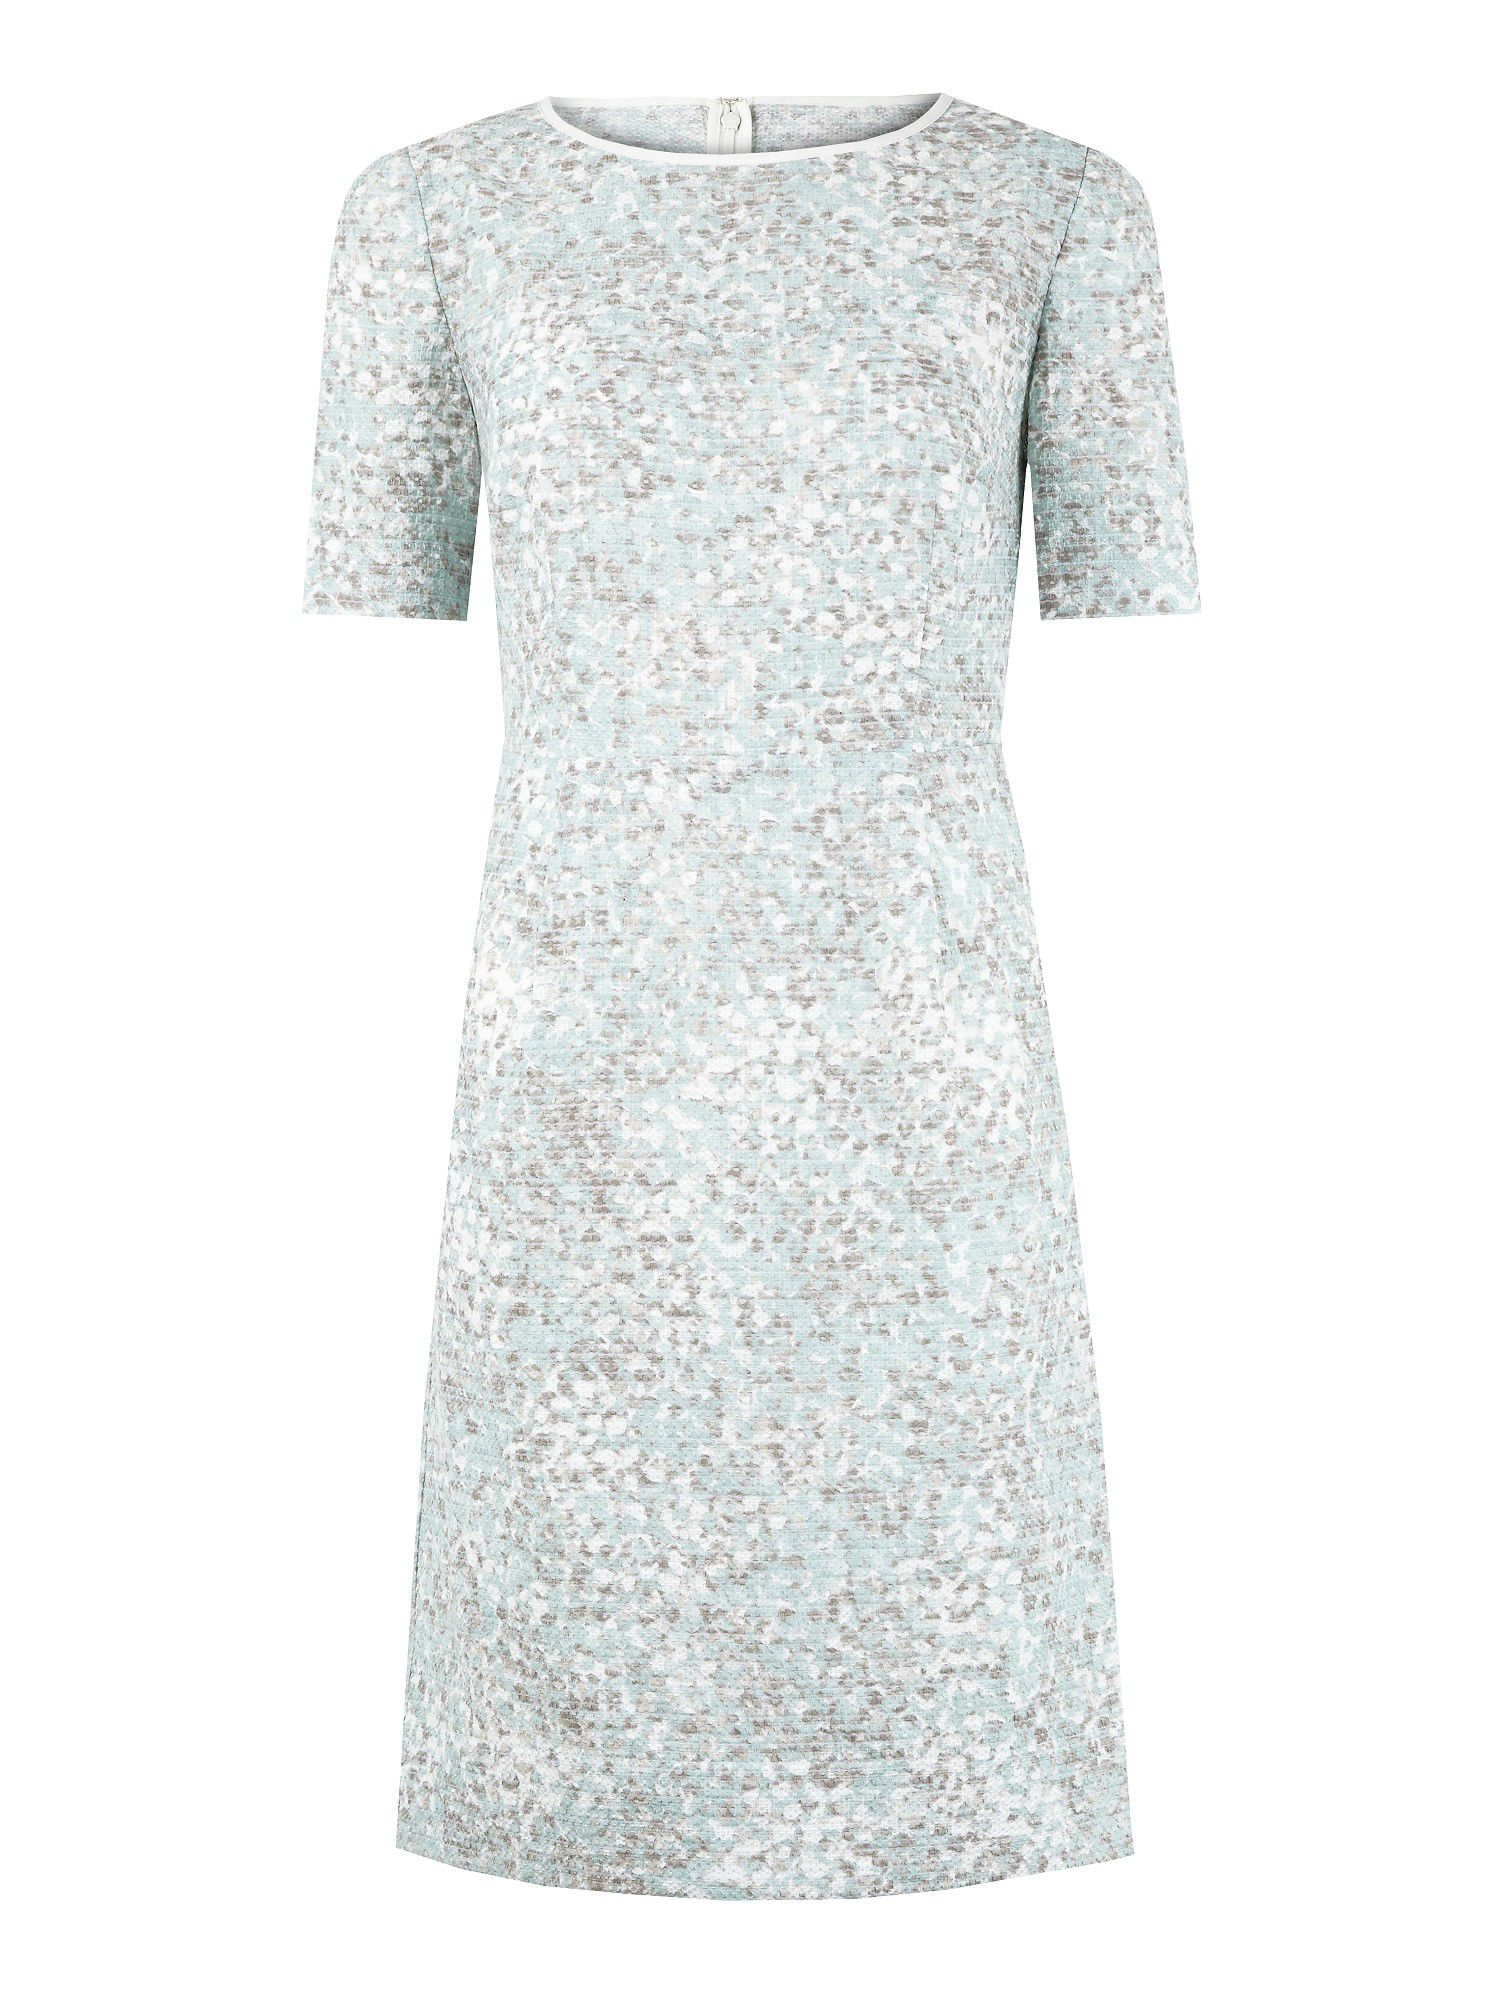 Duck egg mosaic printed dress